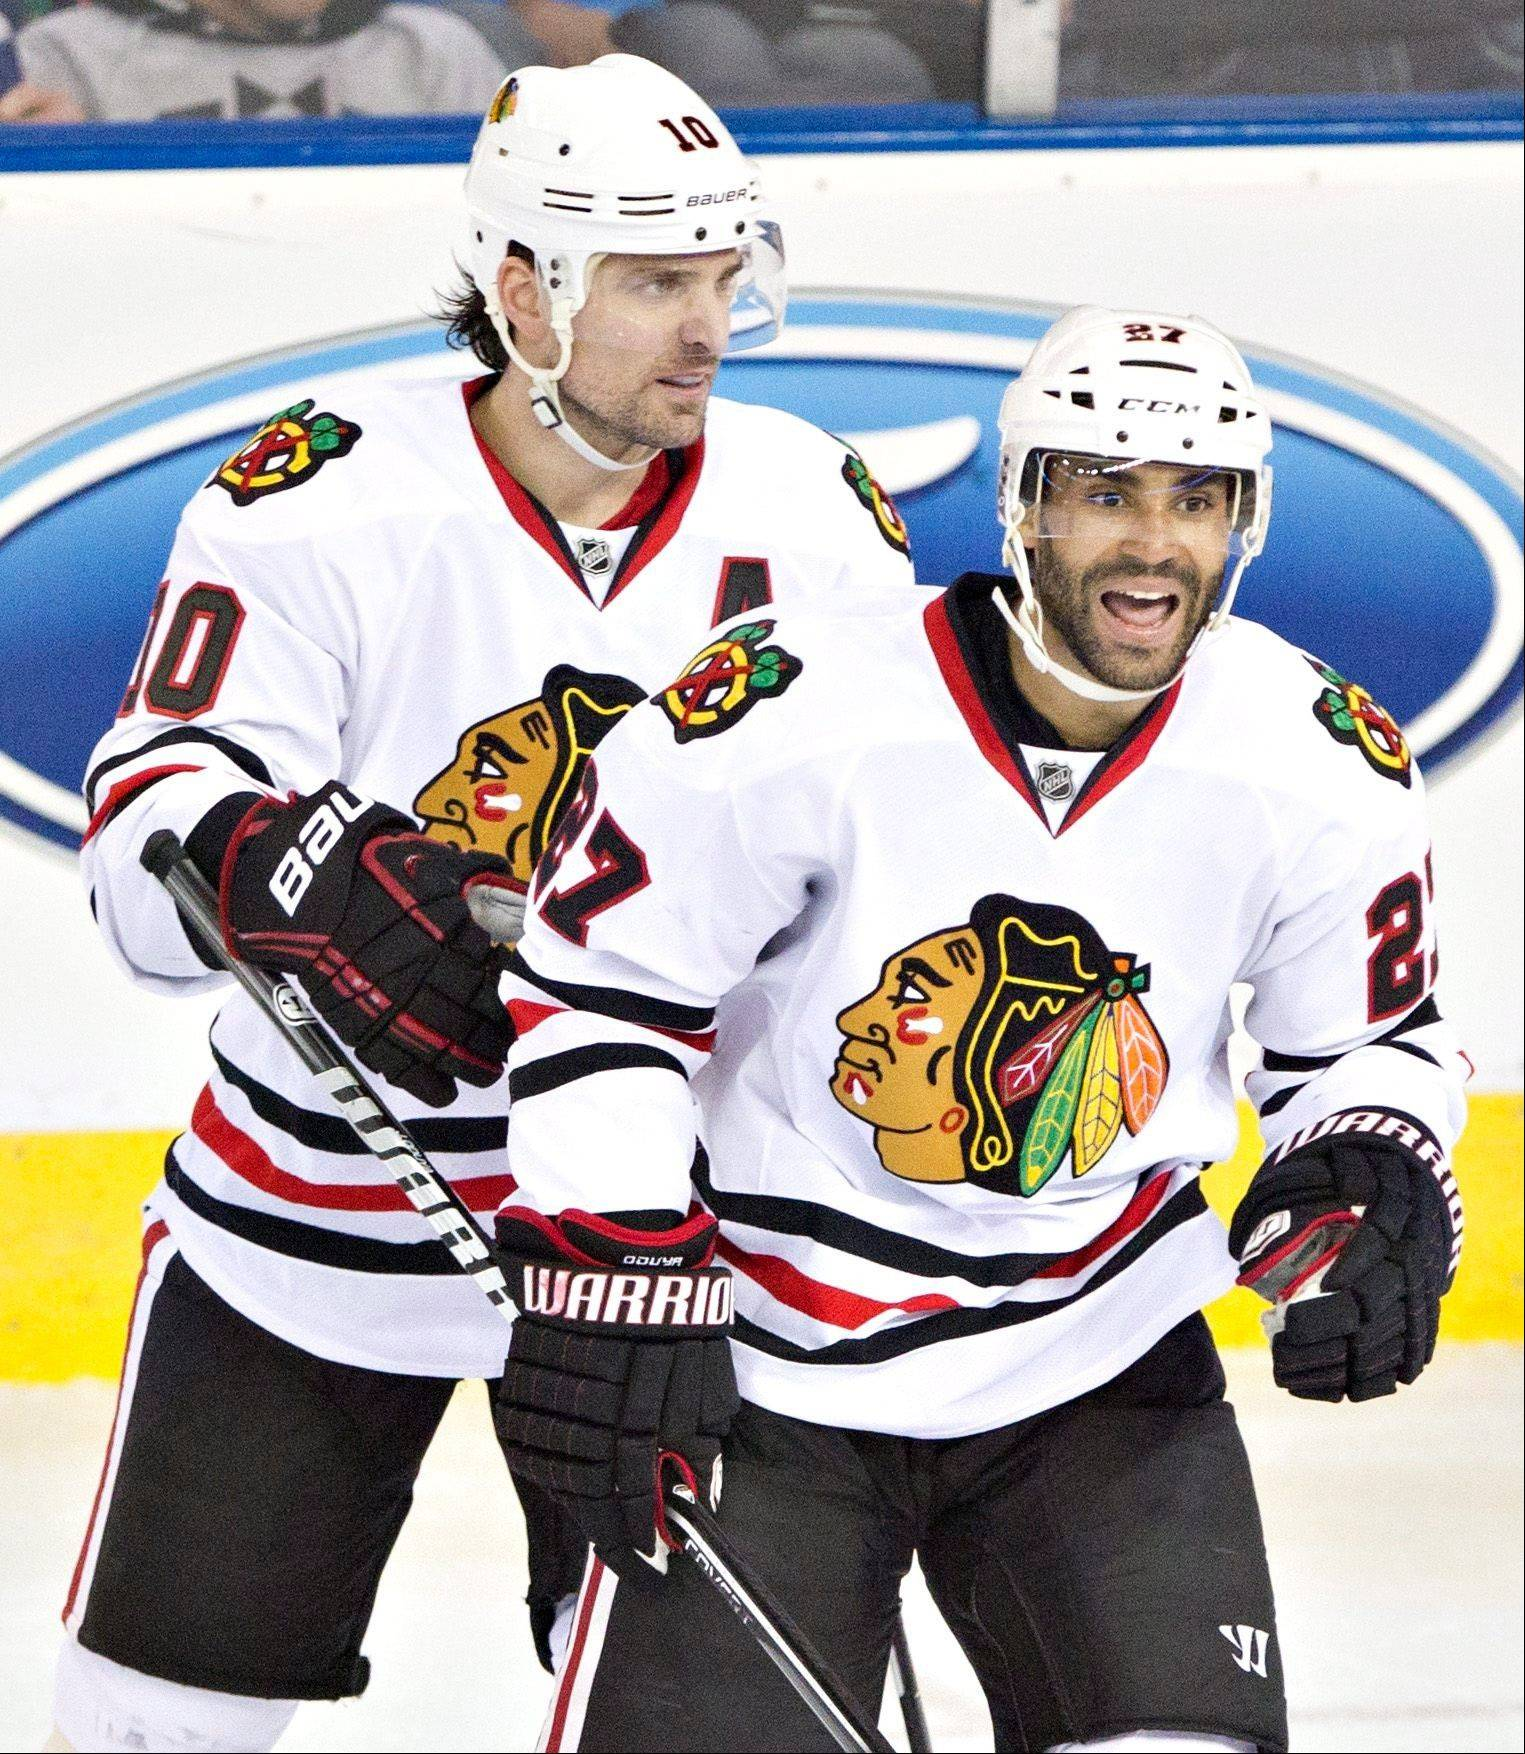 The Hawks clinched the Presidents' Trophy on April 24 when they defeated the Edmonton Oilers. Here Blackhawks' Johnny Oduya and Patrick Sharp celebrate a goal.